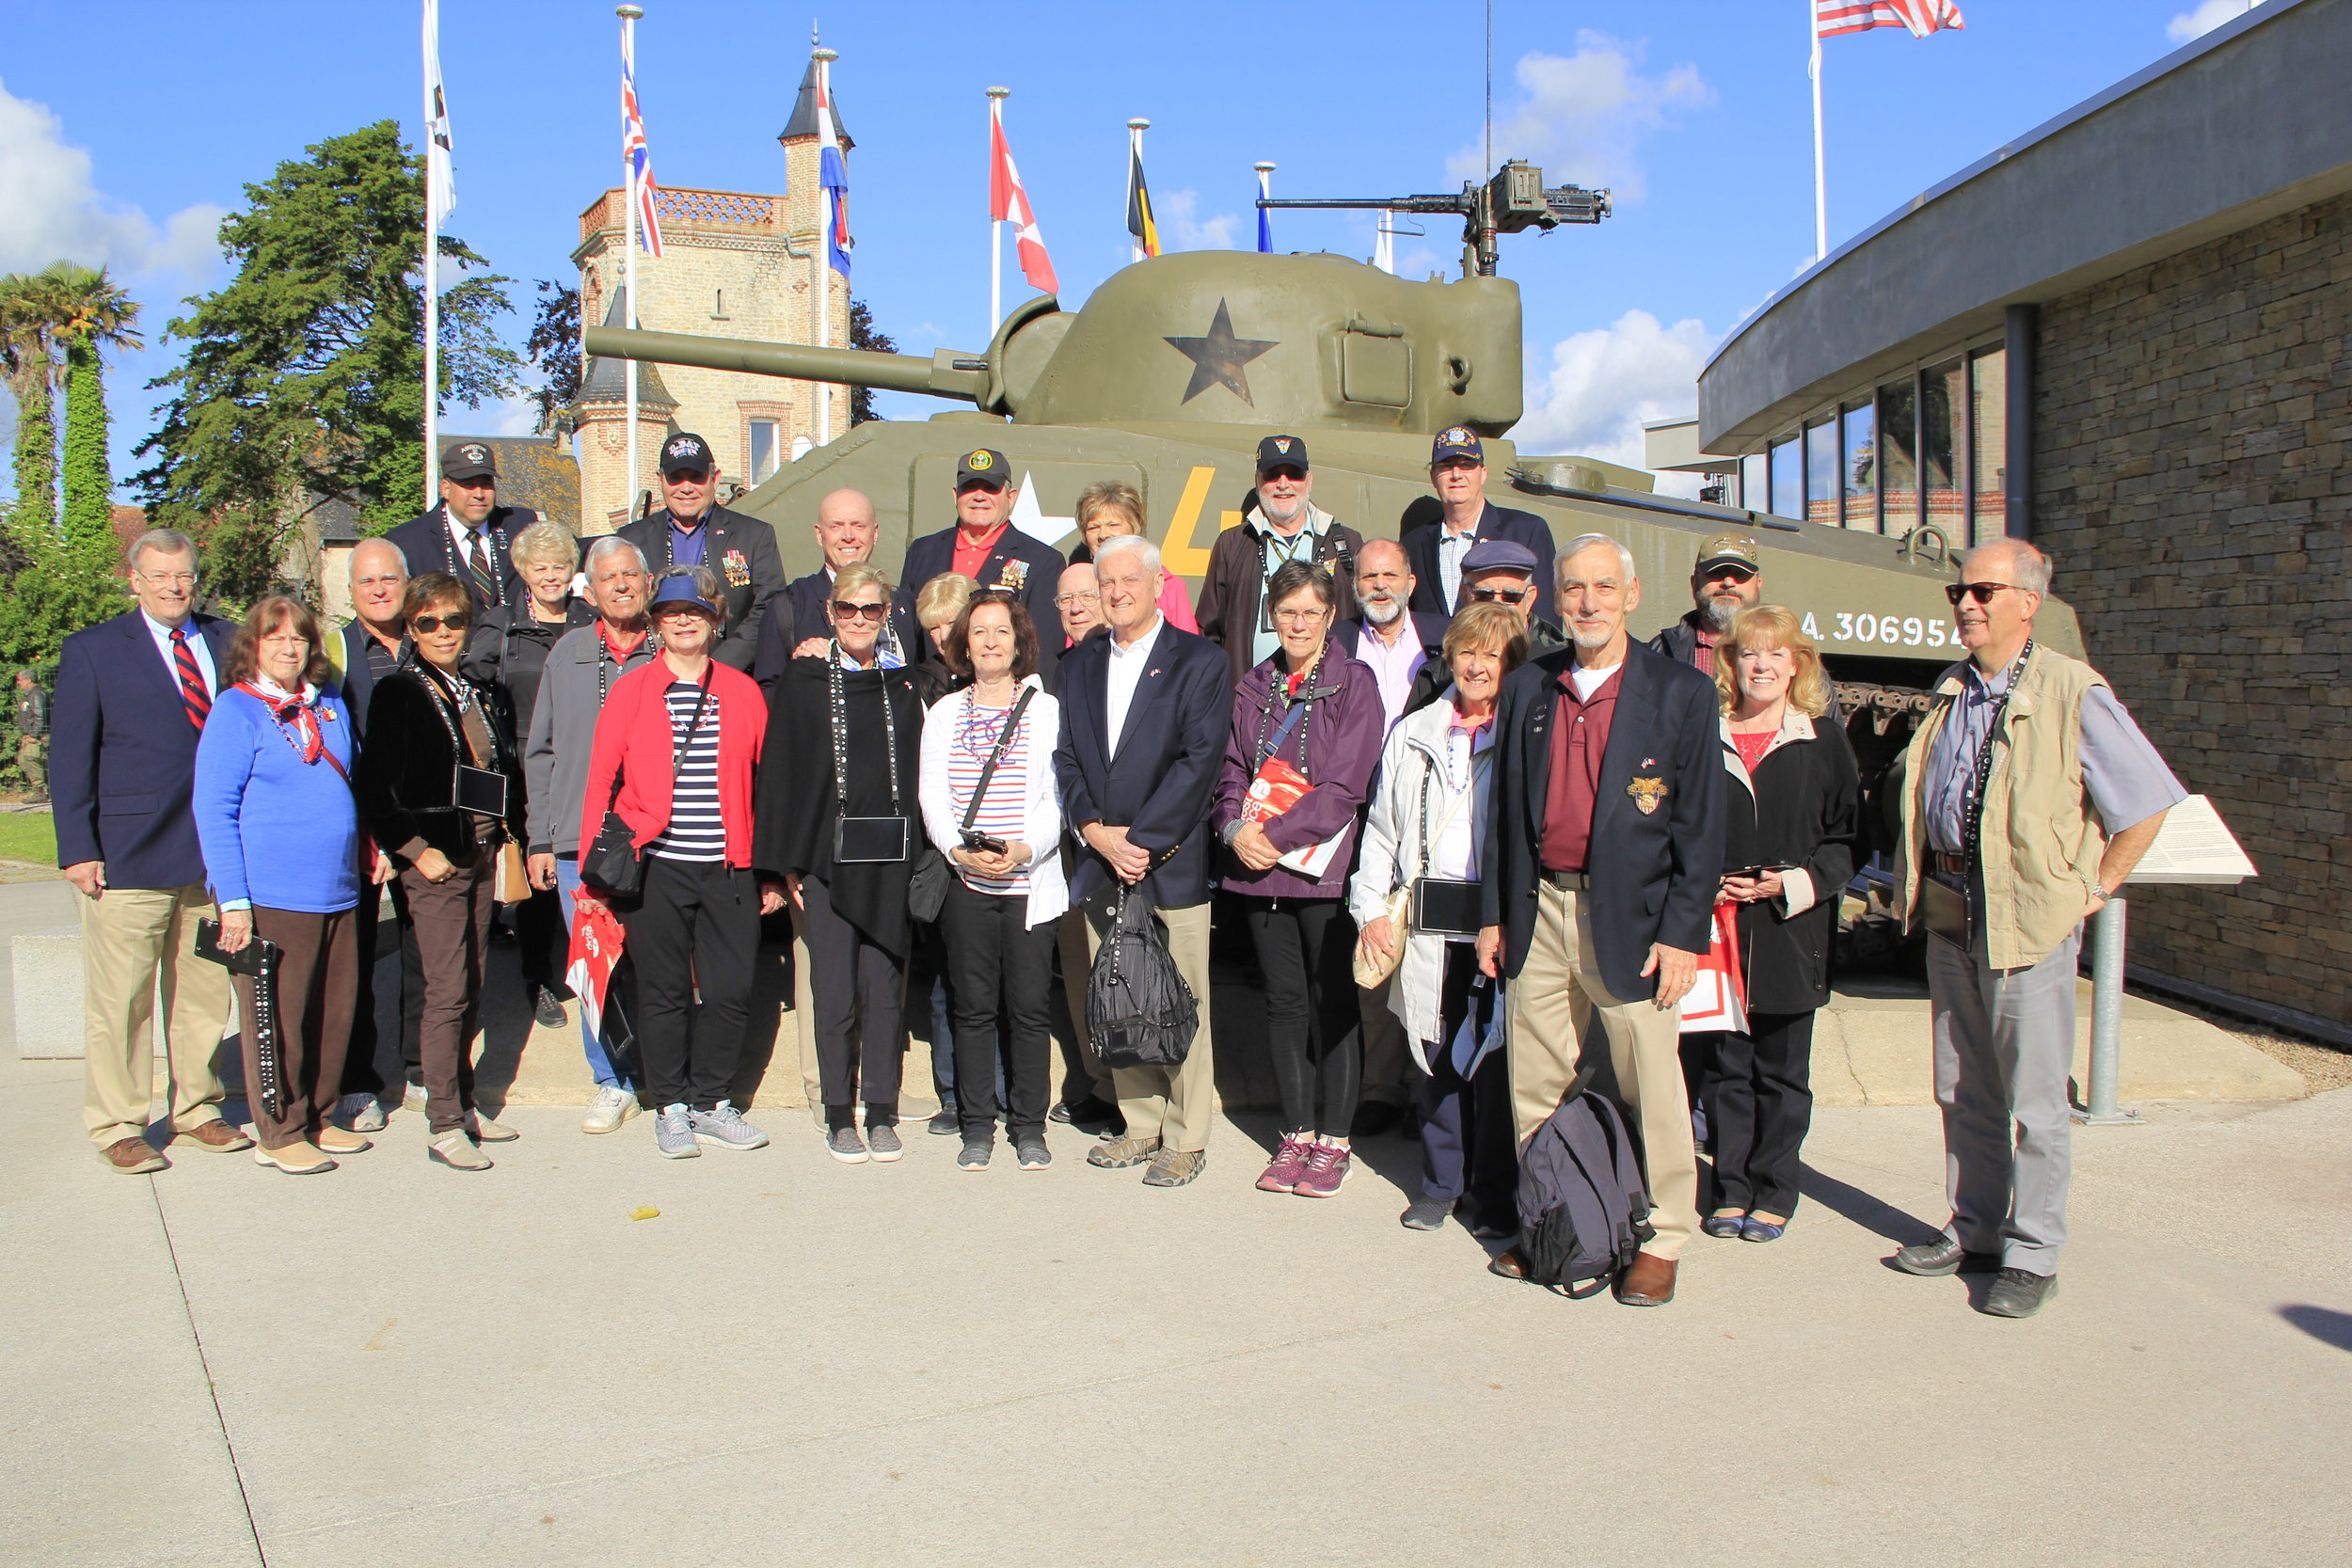 Some of Our D Day Folks at the Airborne Museum Ste. Mere Eglise 6 June 2019